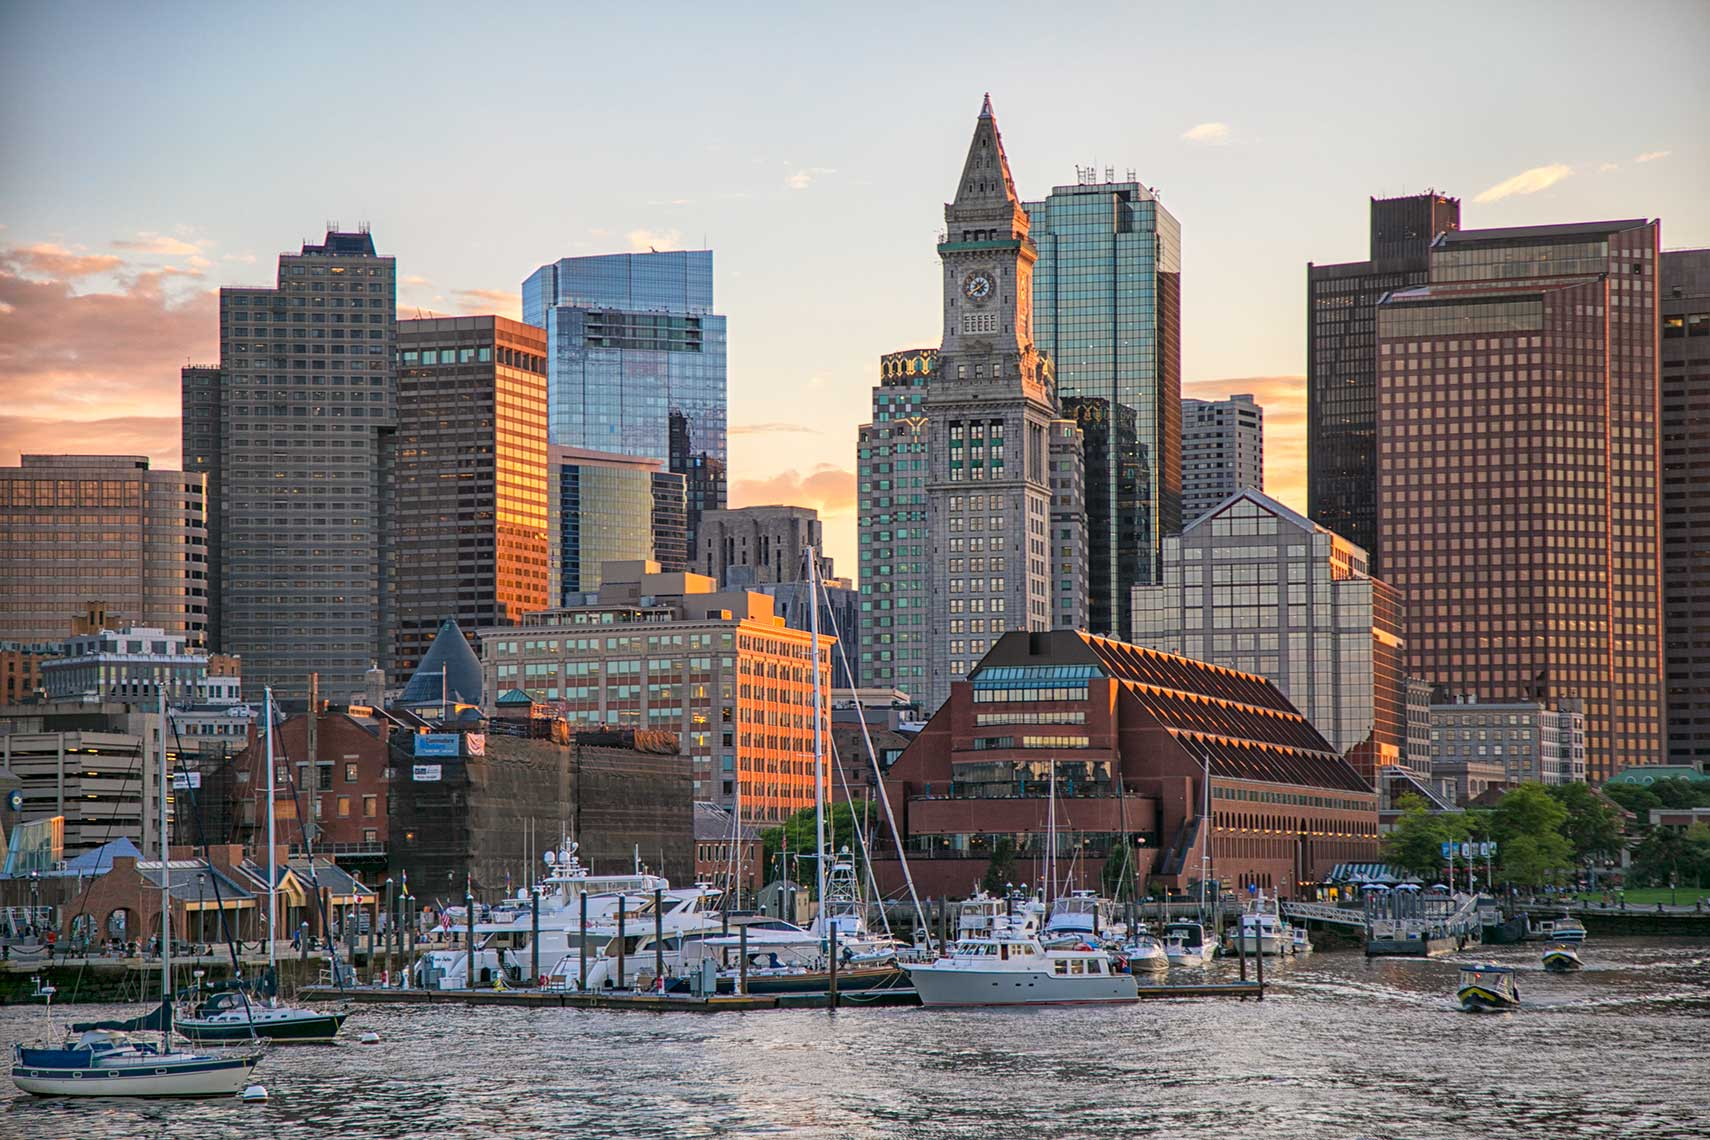 Boston skyline from the harbor with Long Wharf and the Customs House Tower